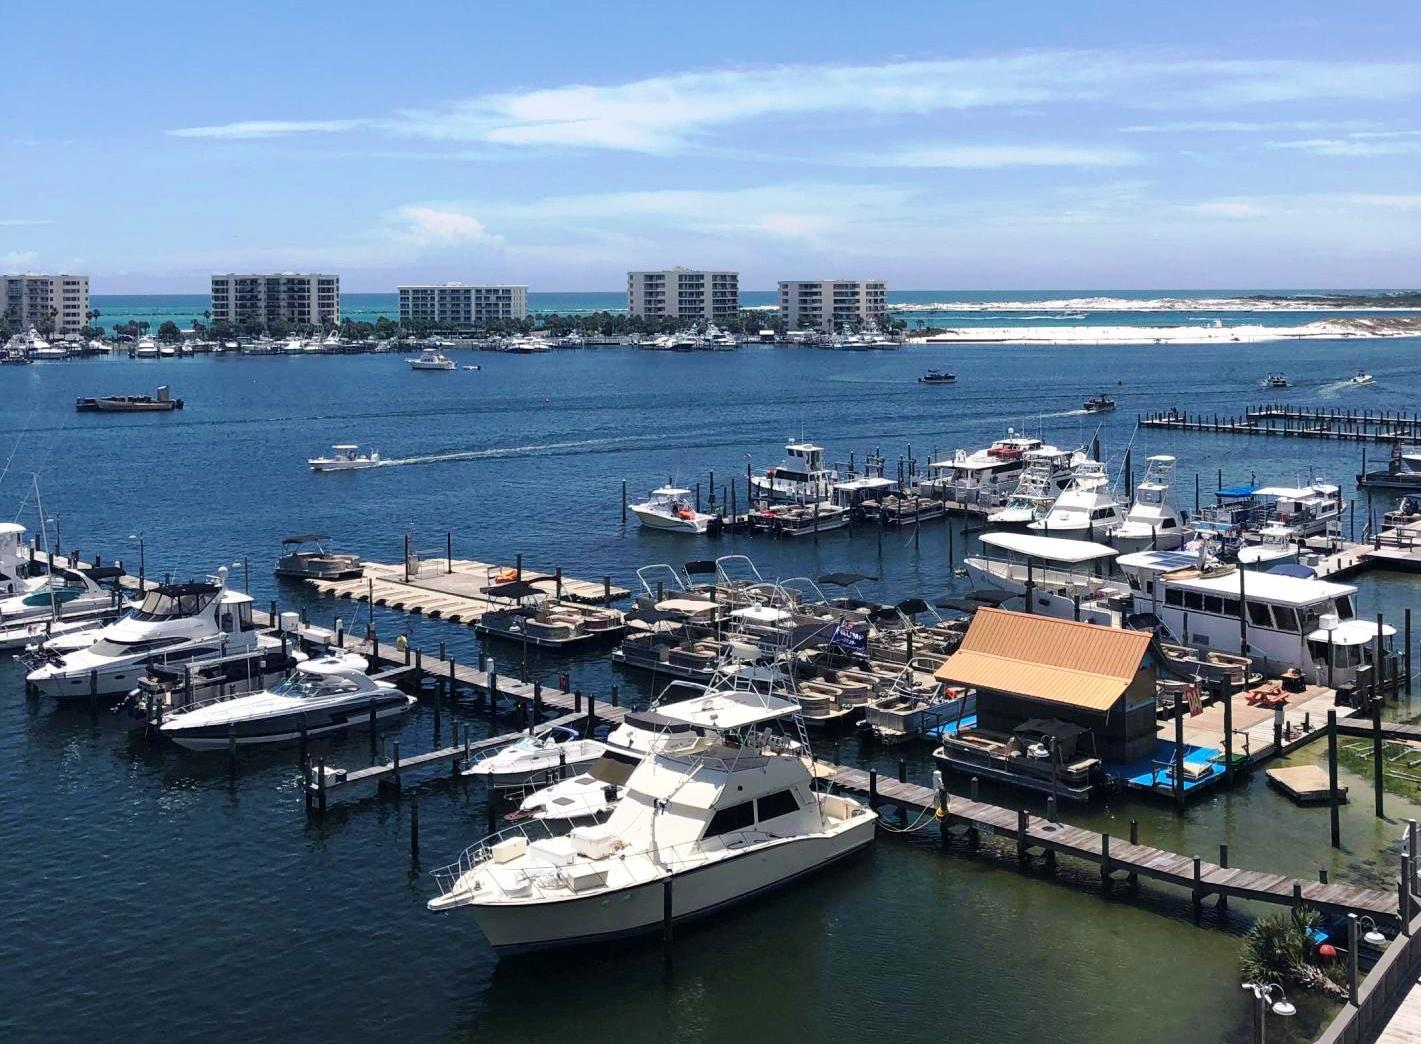 Enjoy harbor living at its finest in this fifth floor unit overlooking Destin harbor, the East Pass